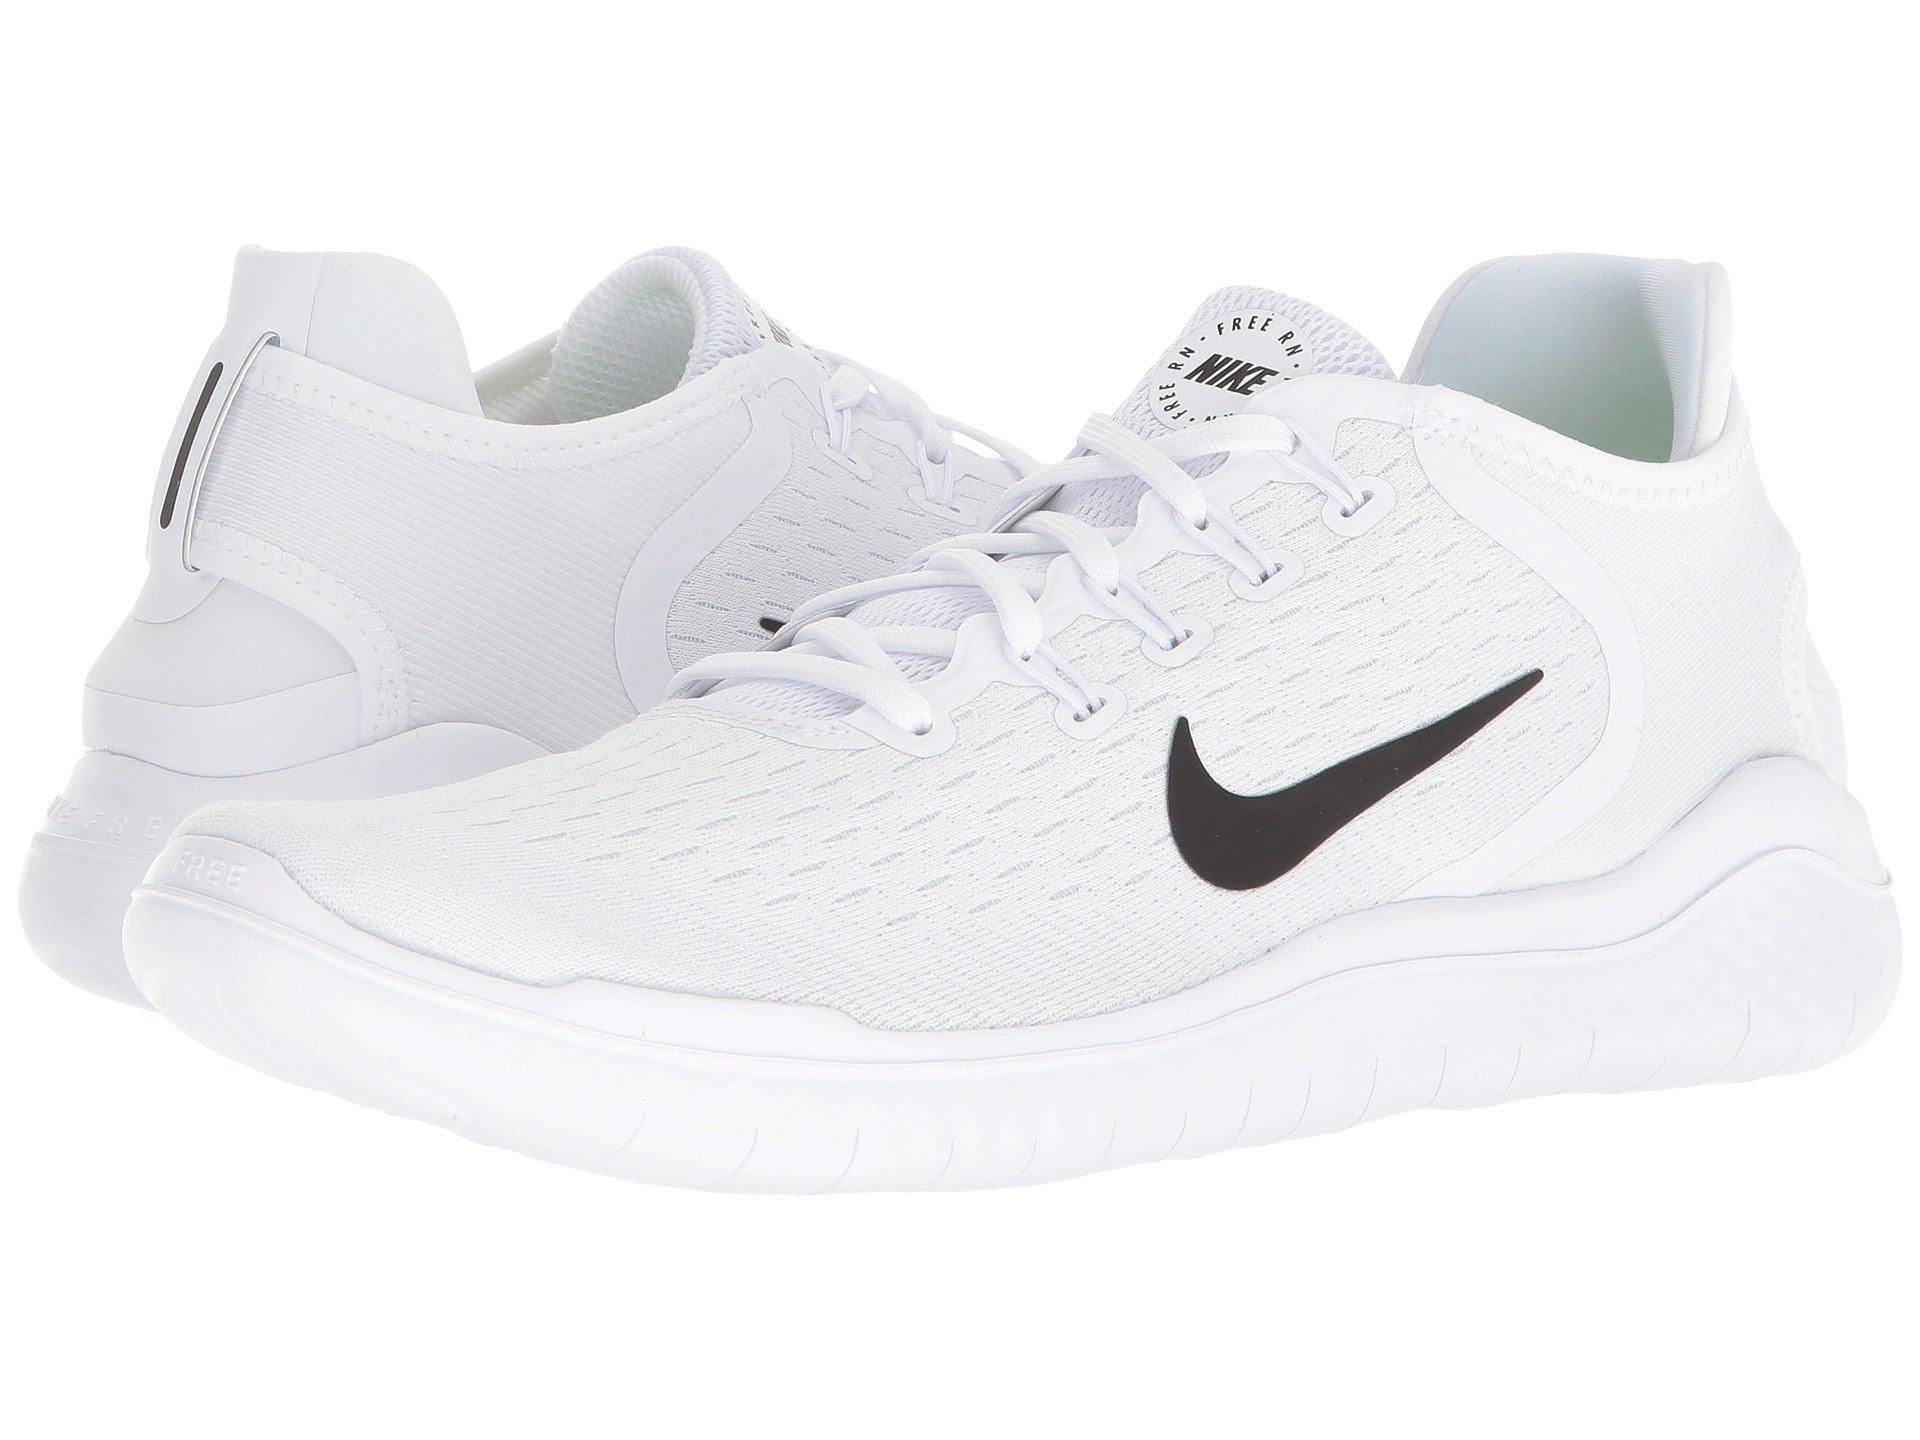 Lyst Nike Free Rn 2018 in White for Men Save 56%